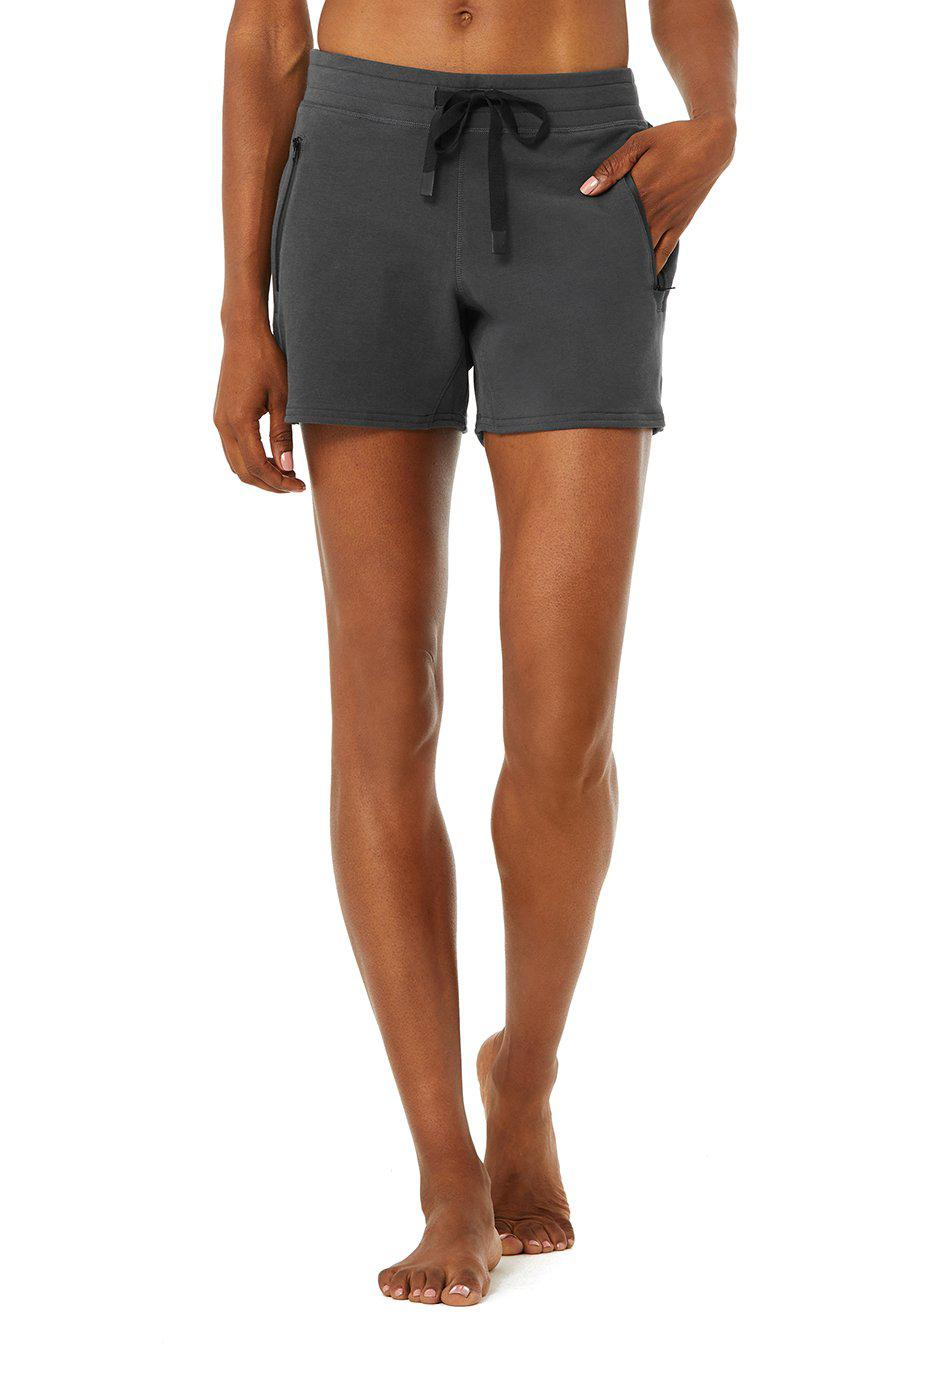 Double Take Sweat Short - Anthracite